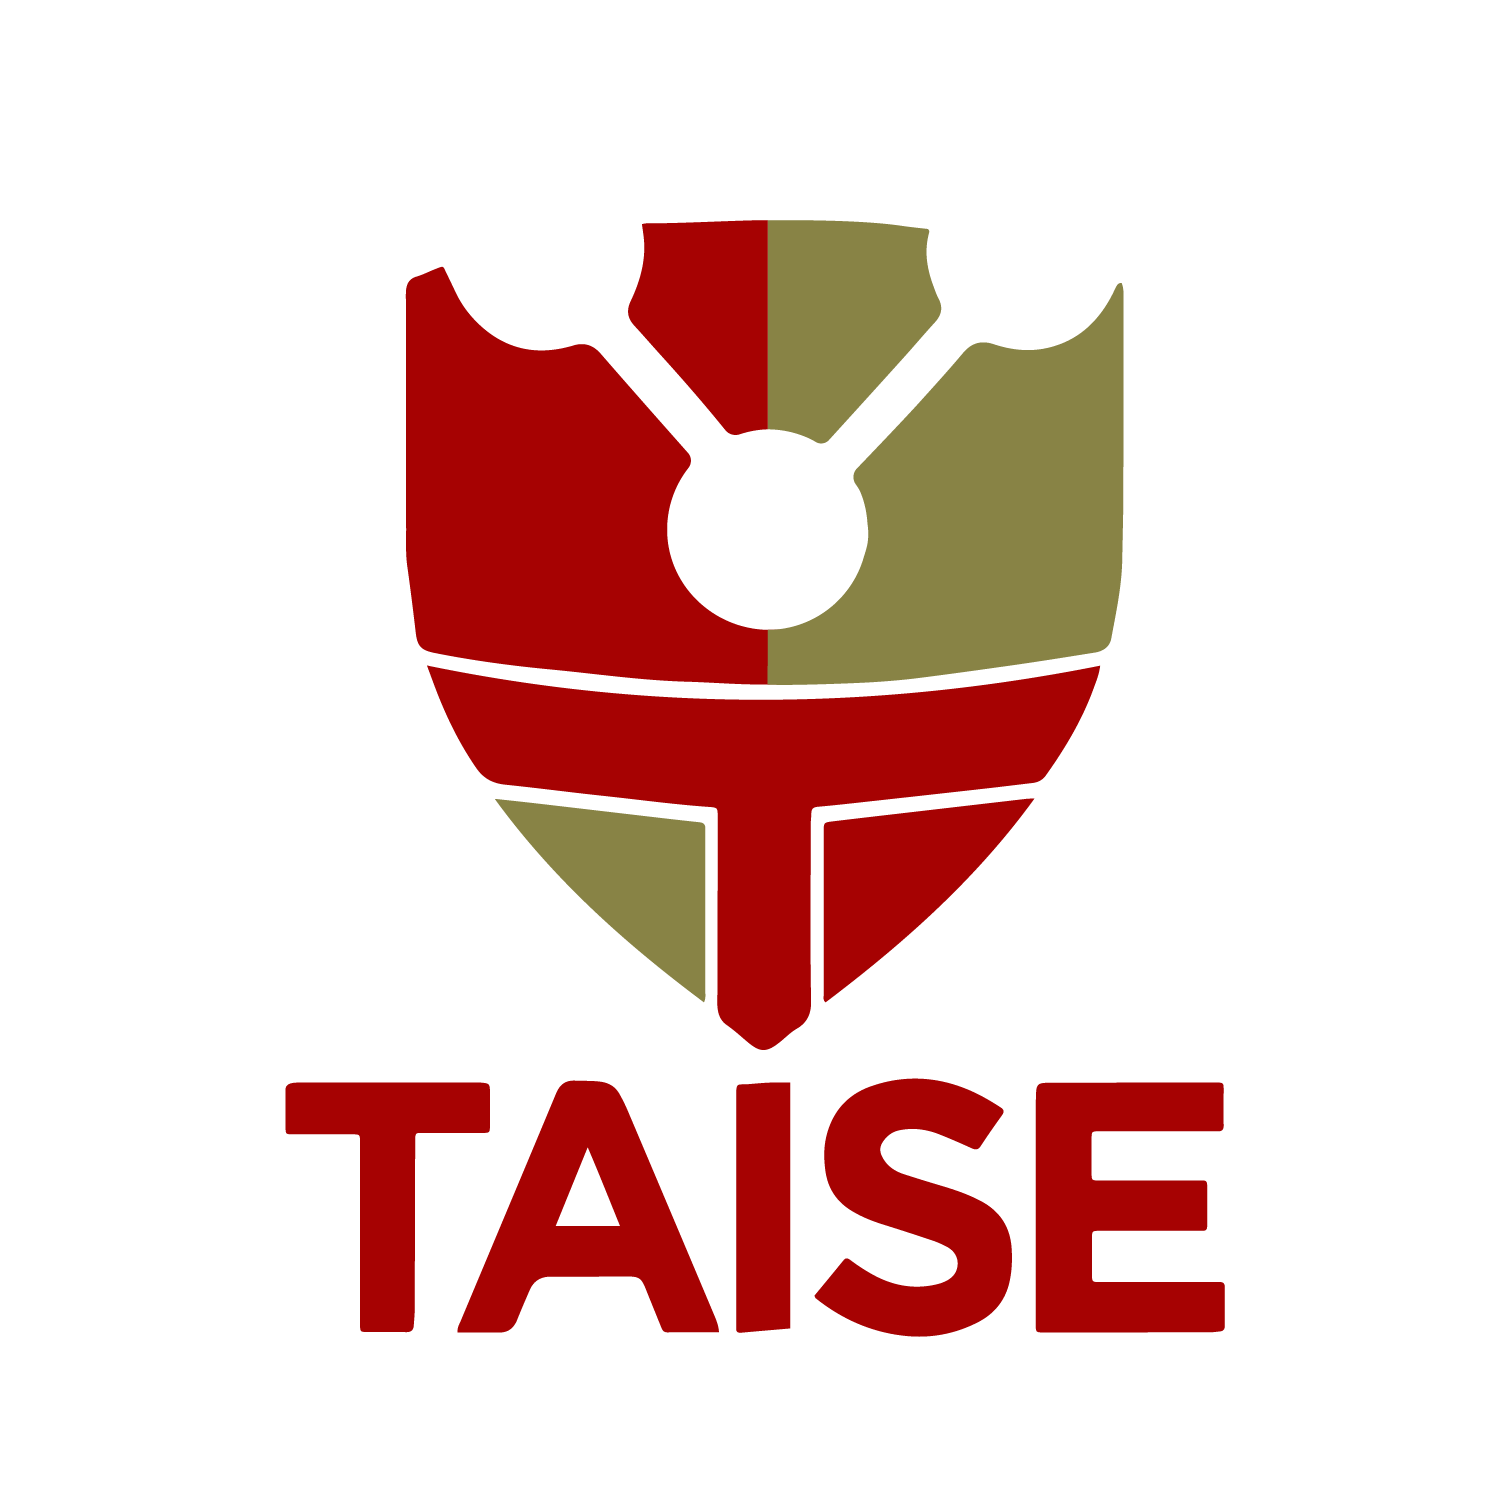 TAISE – Tactical Intelligence Security